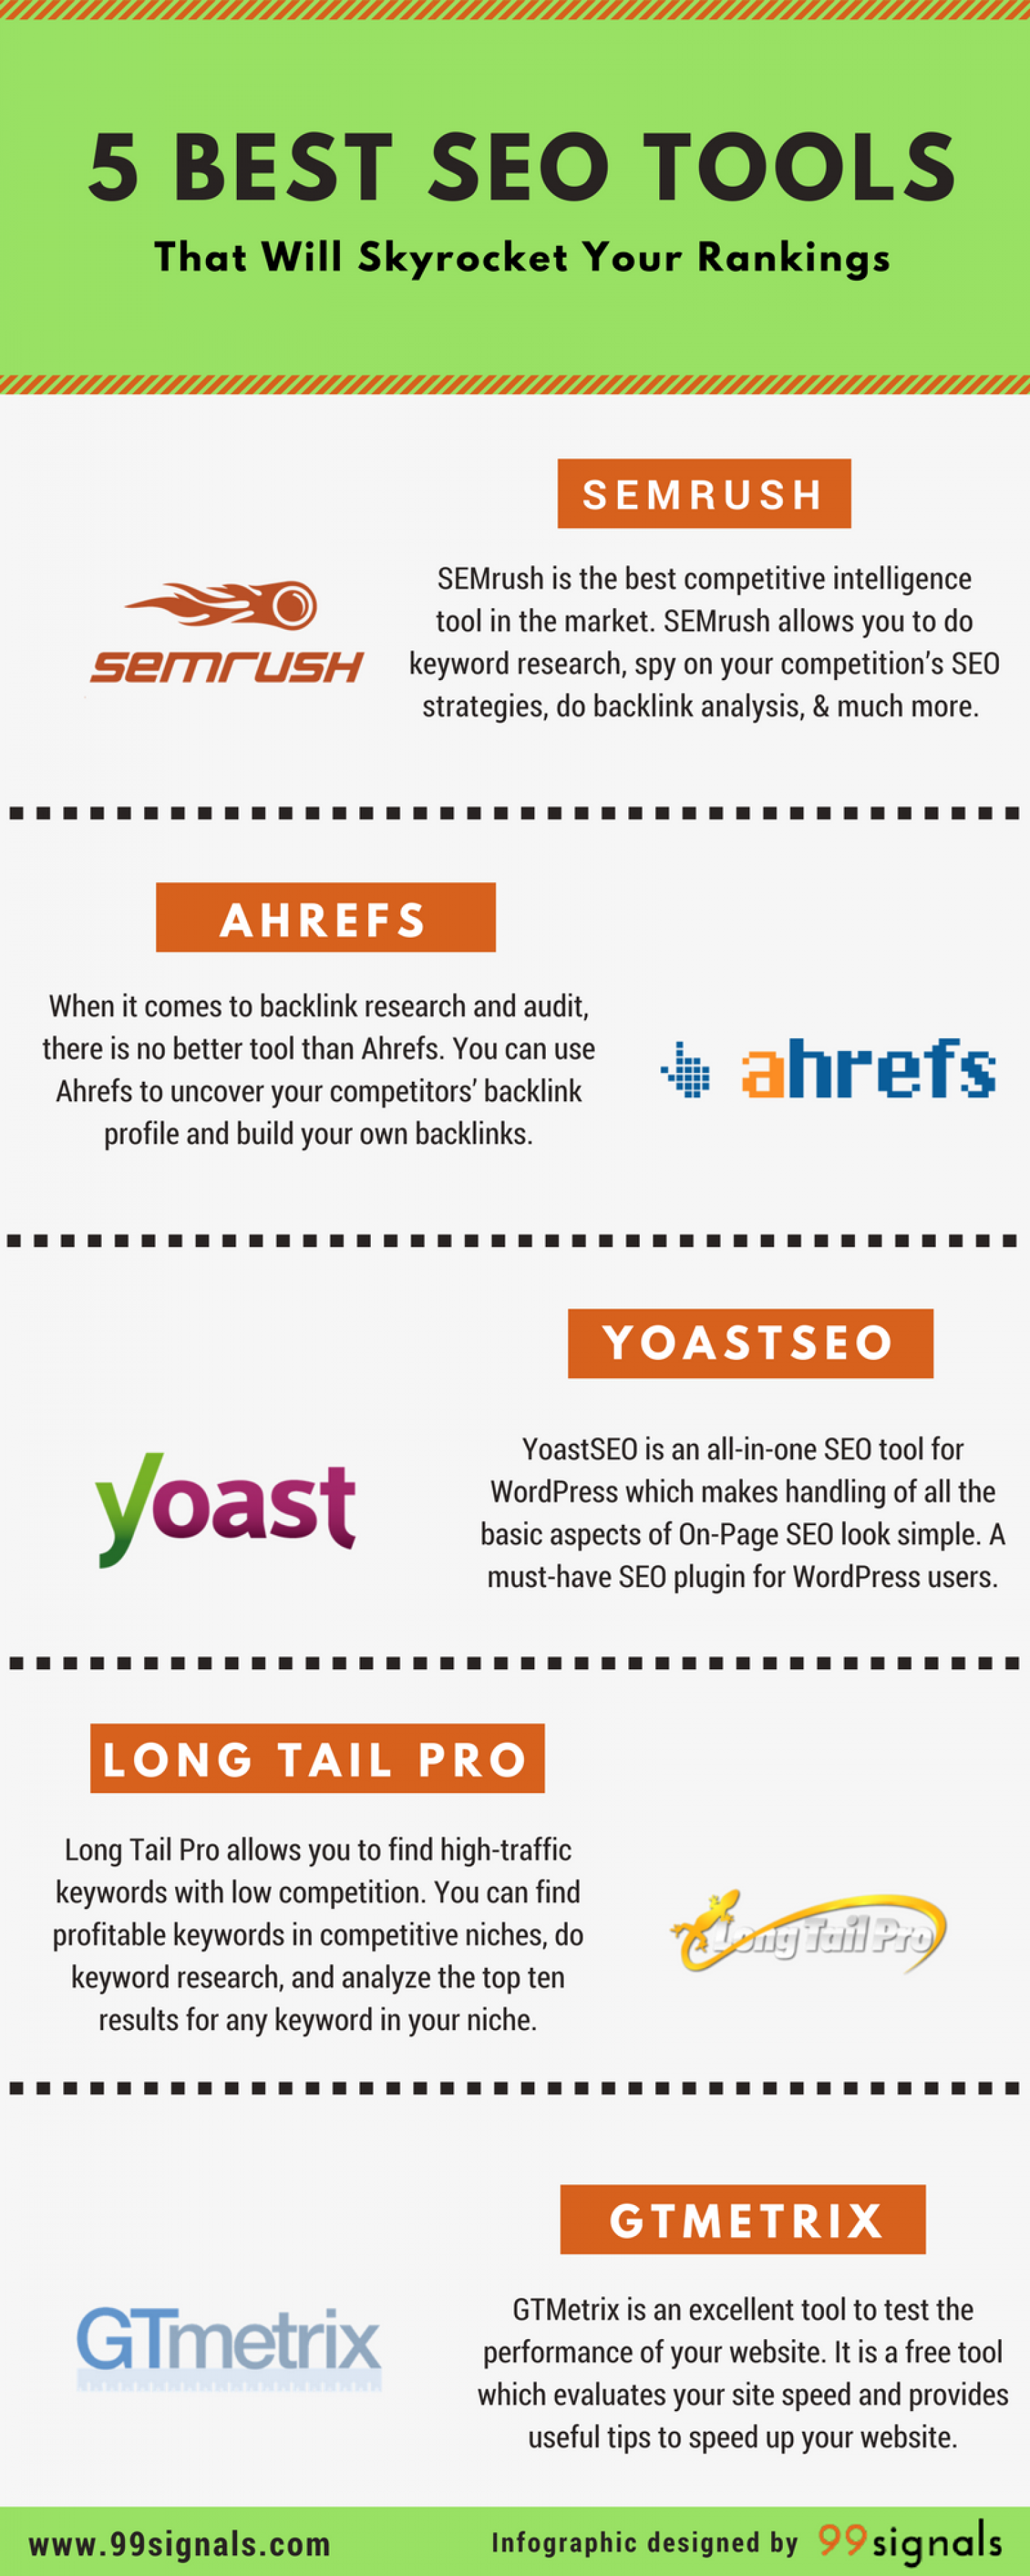 5 Best SEO Tools That Will Skyrocket Your Rankings [Infographic] Infographic